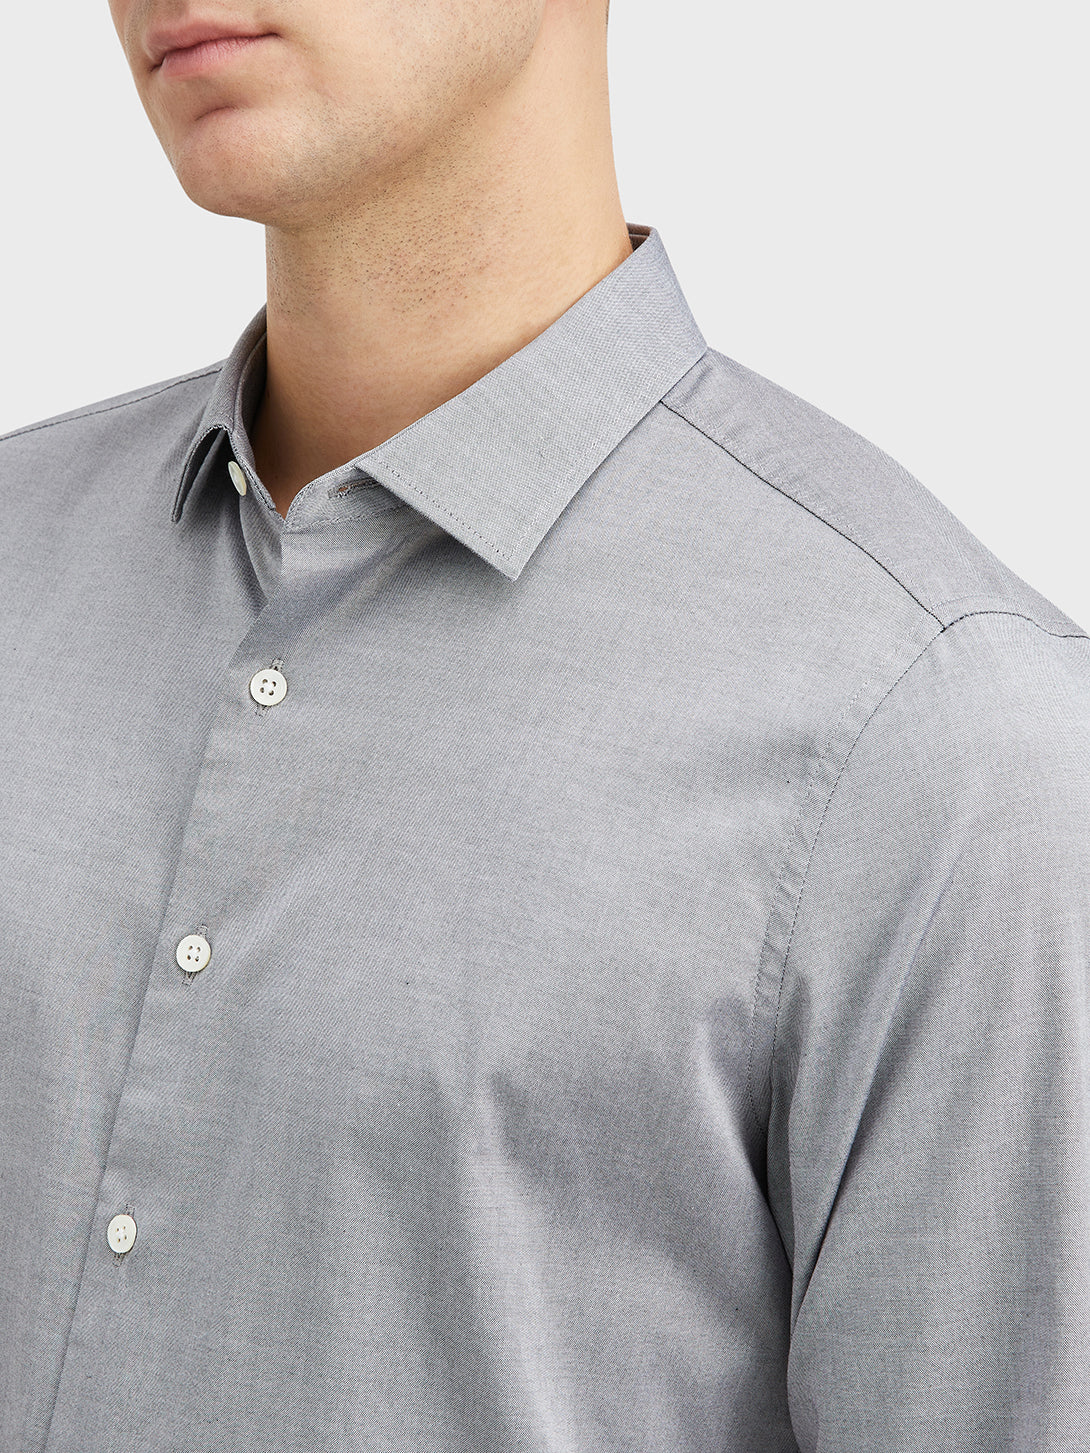 Gray Adrian Pinpoint Oxford Shirt Men's cotton shirts ONS Clothing